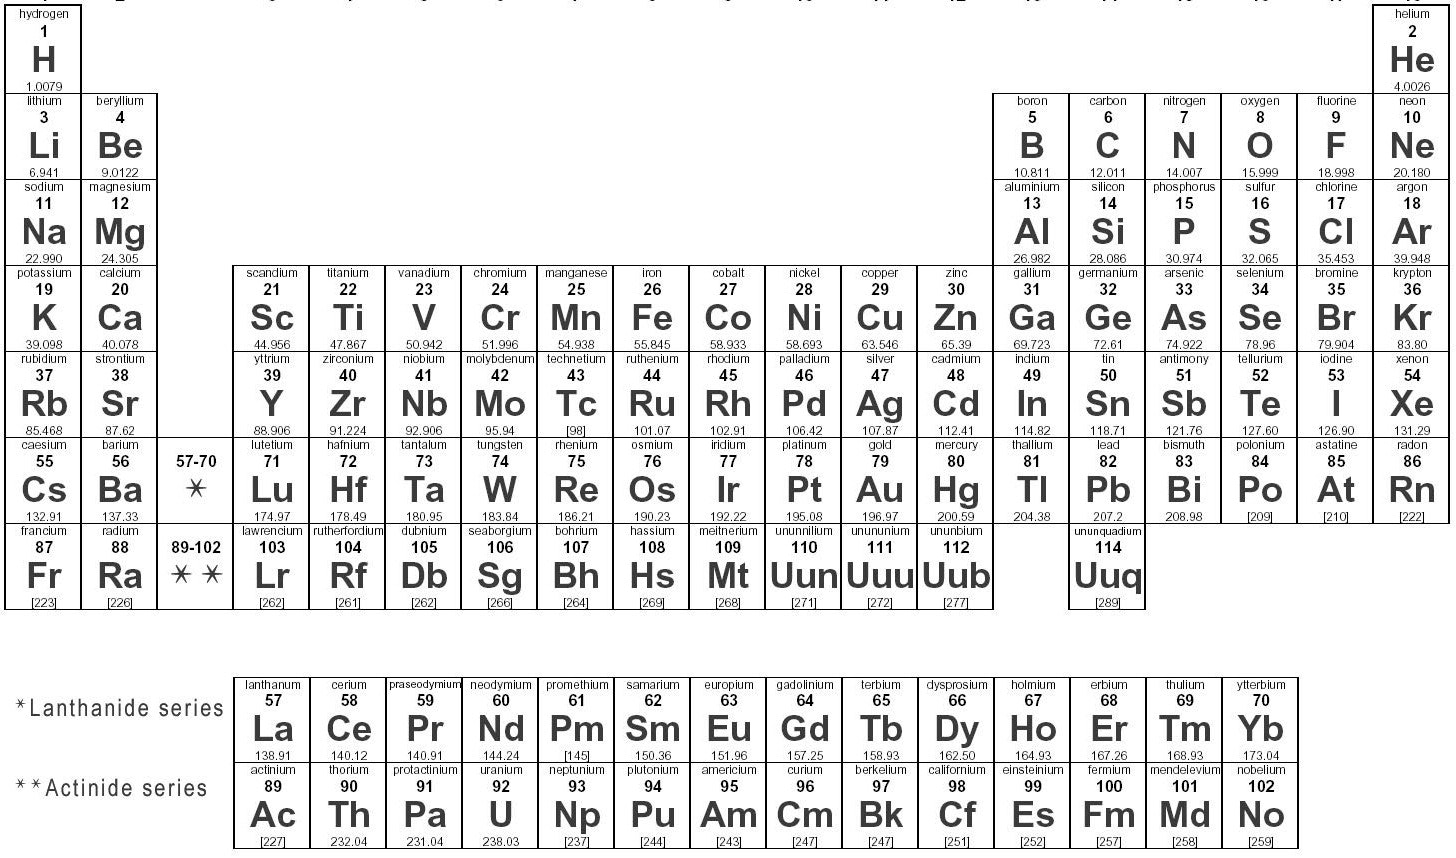 Ngss physical sciences electronegativity graph analysis electronegativity graph analysis moderate levanhan periodic table urtaz Gallery